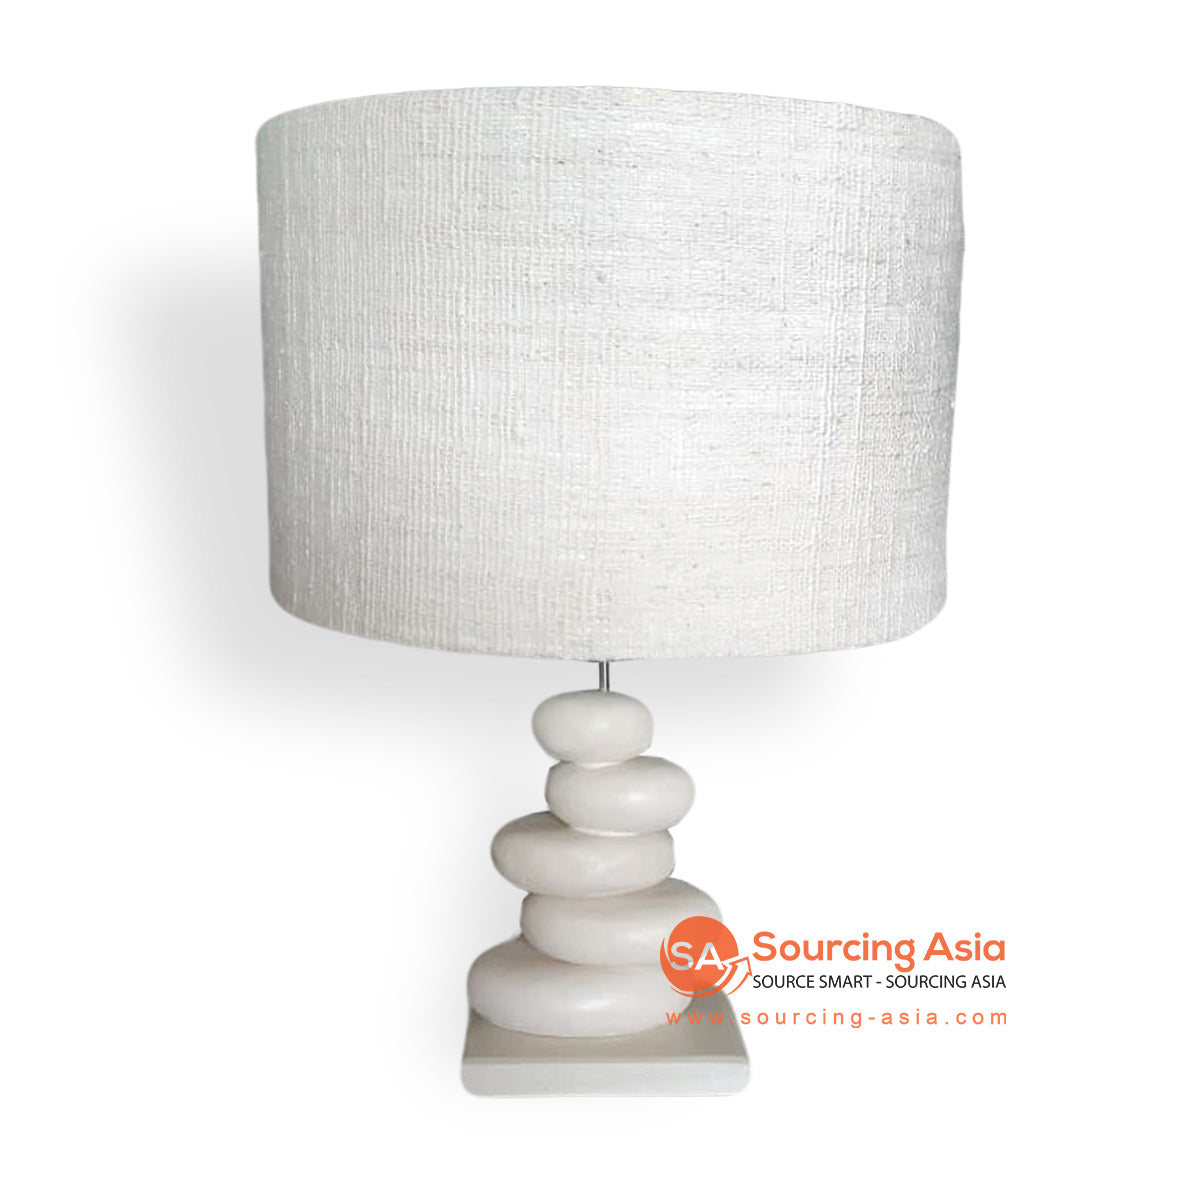 LB-ADS001 WHITE STONE LAMP WITH GUNNY-SACK LAMP SHADE